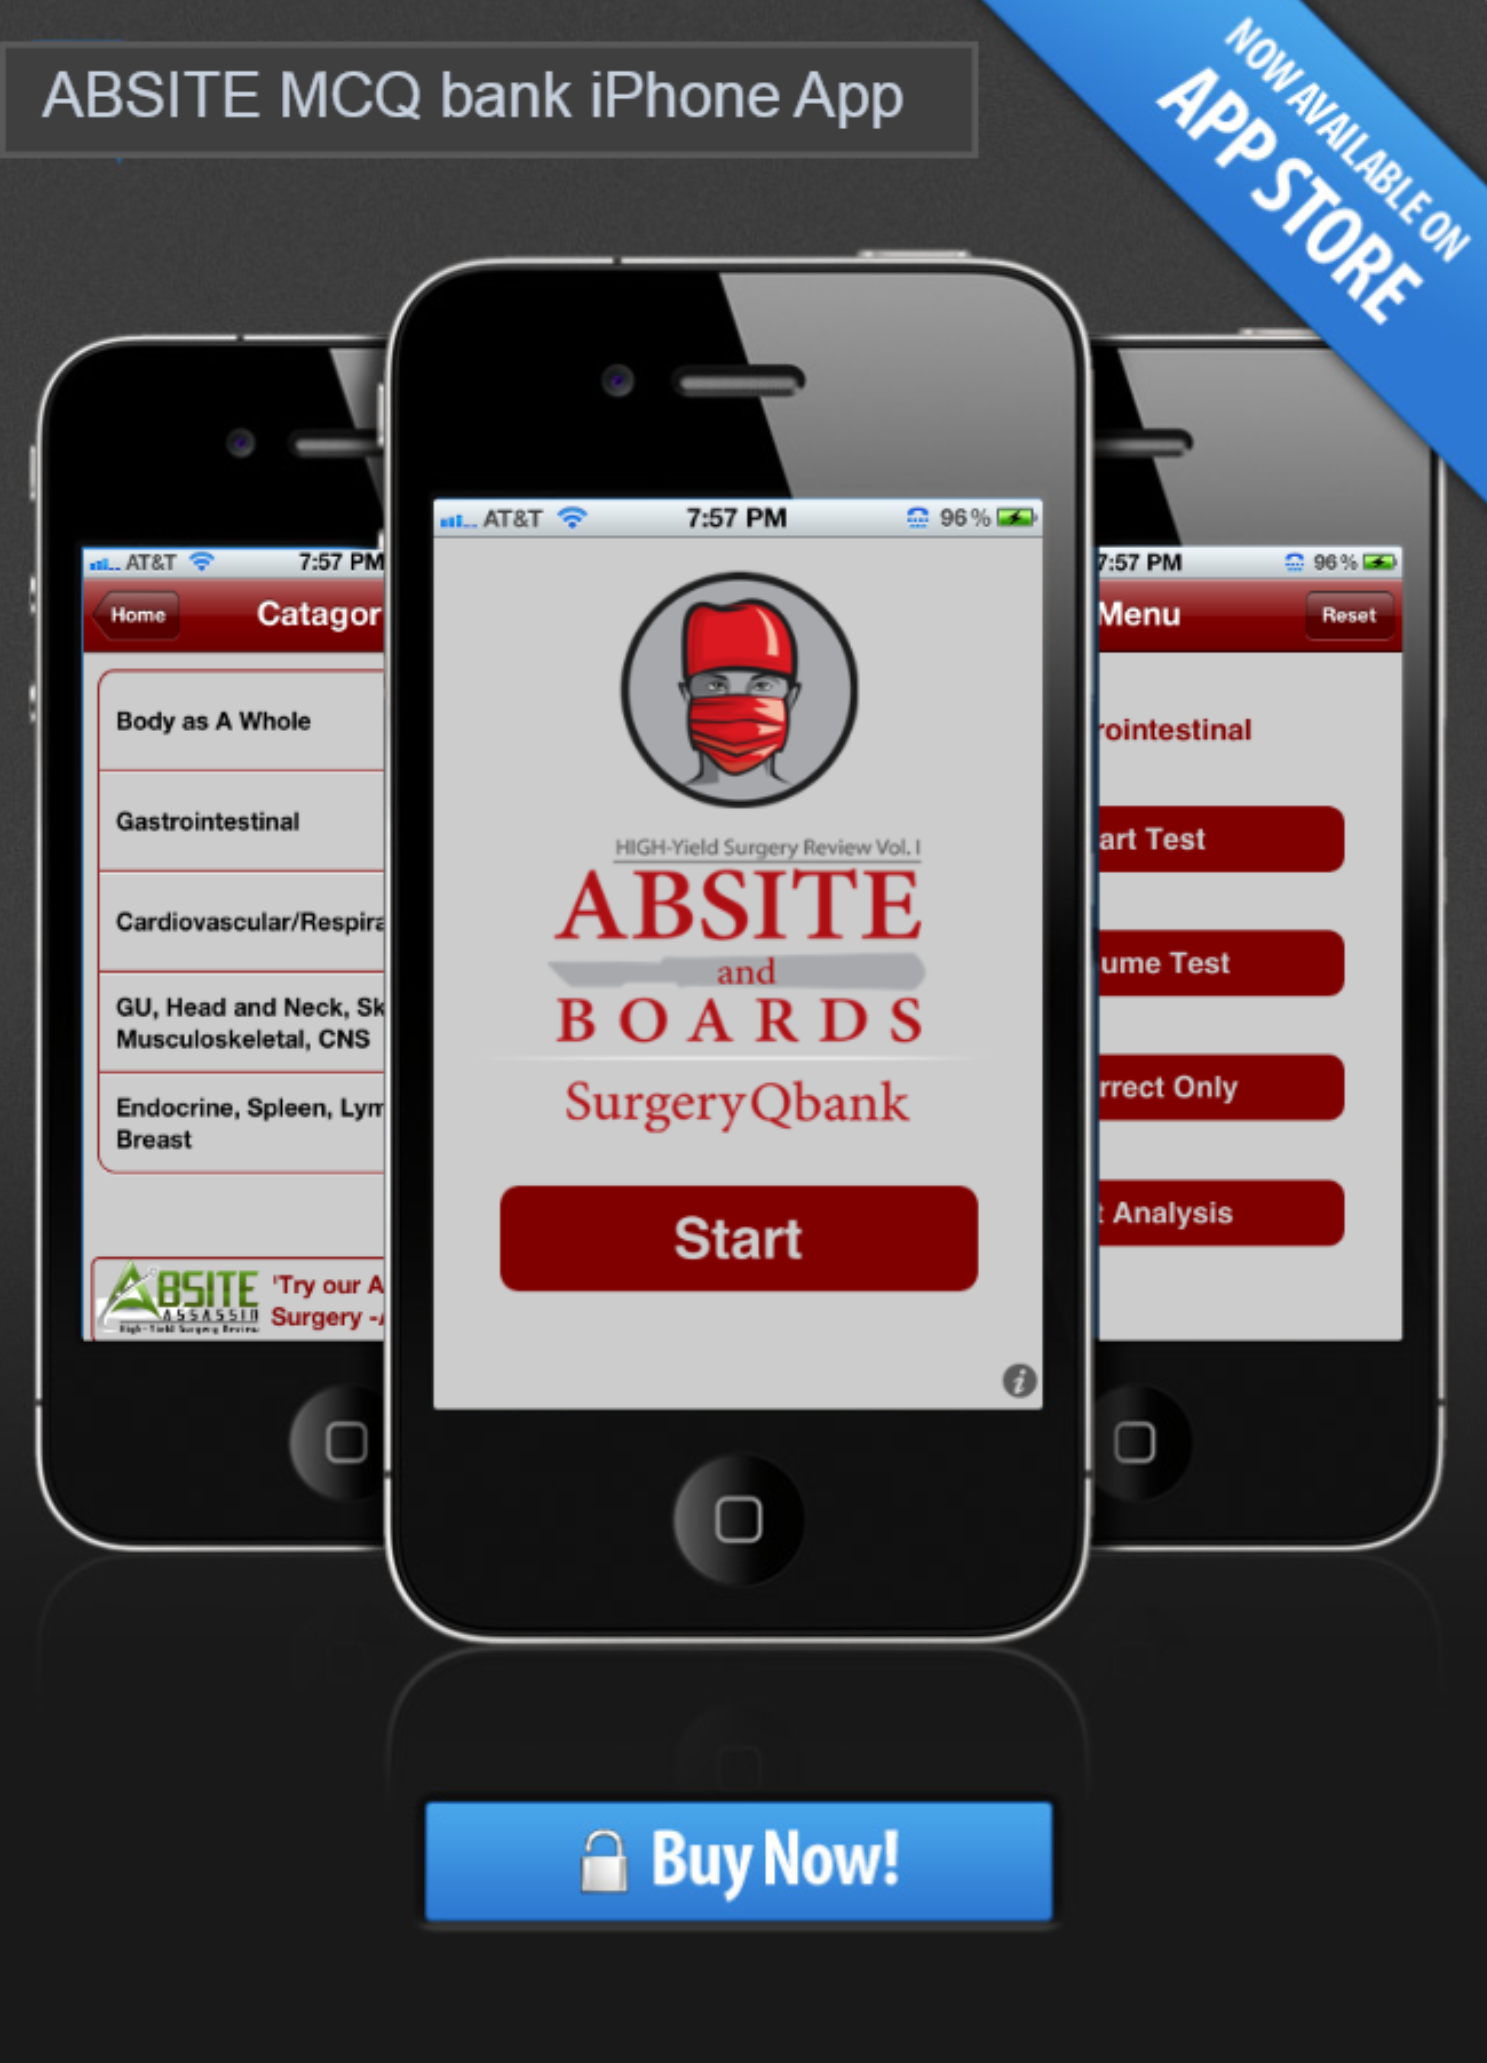 ABSITE SURGERY BOARDS REVIEW QUESTIONS WWW.ABSITE